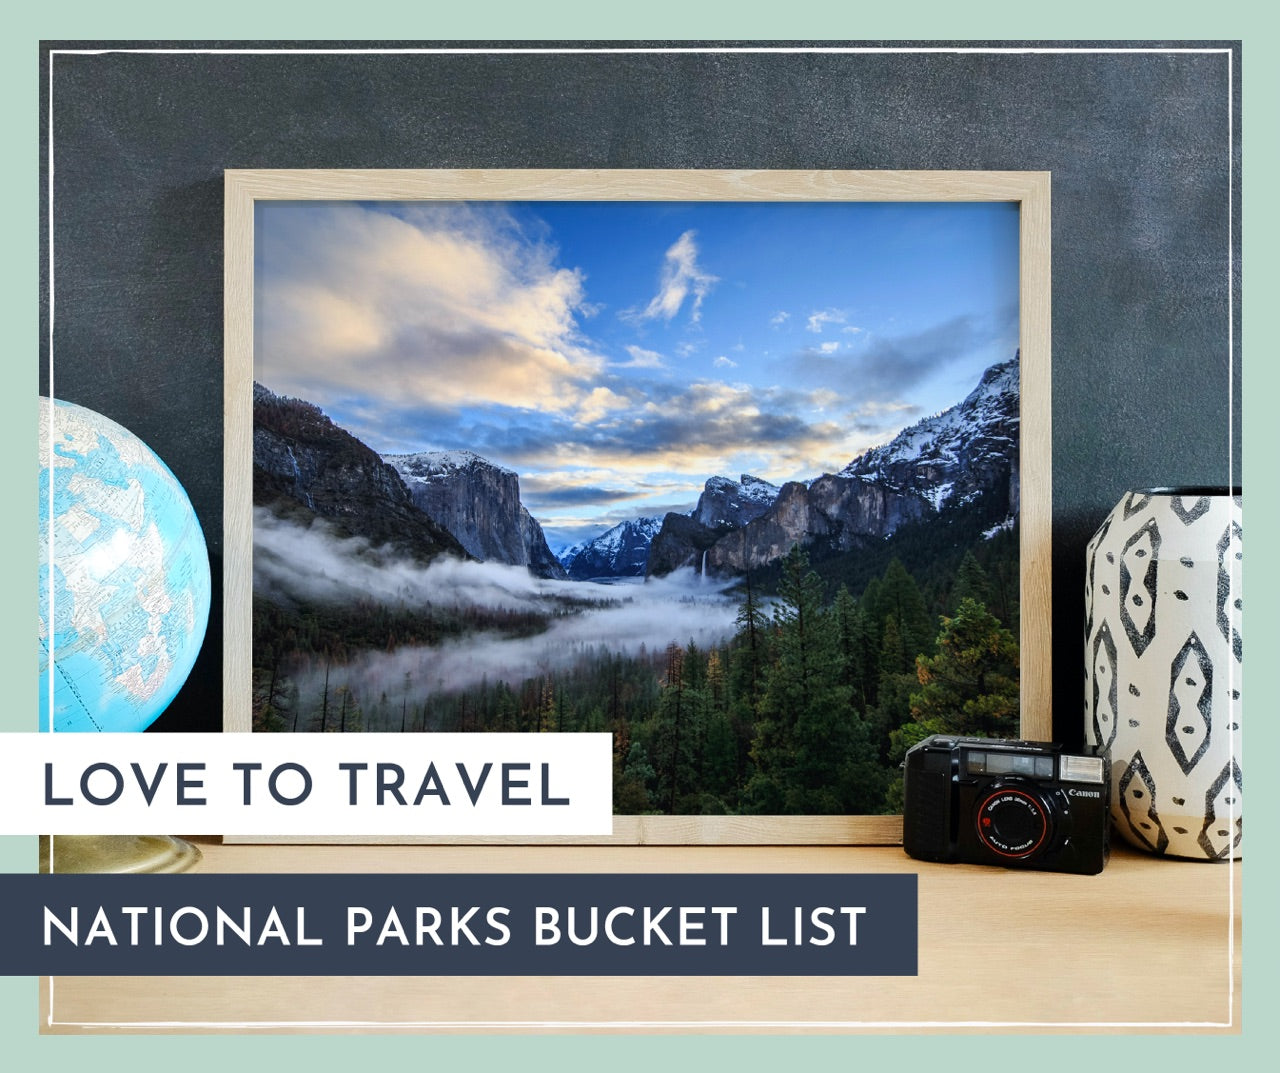 Love to Travel - National Parks Bucket List